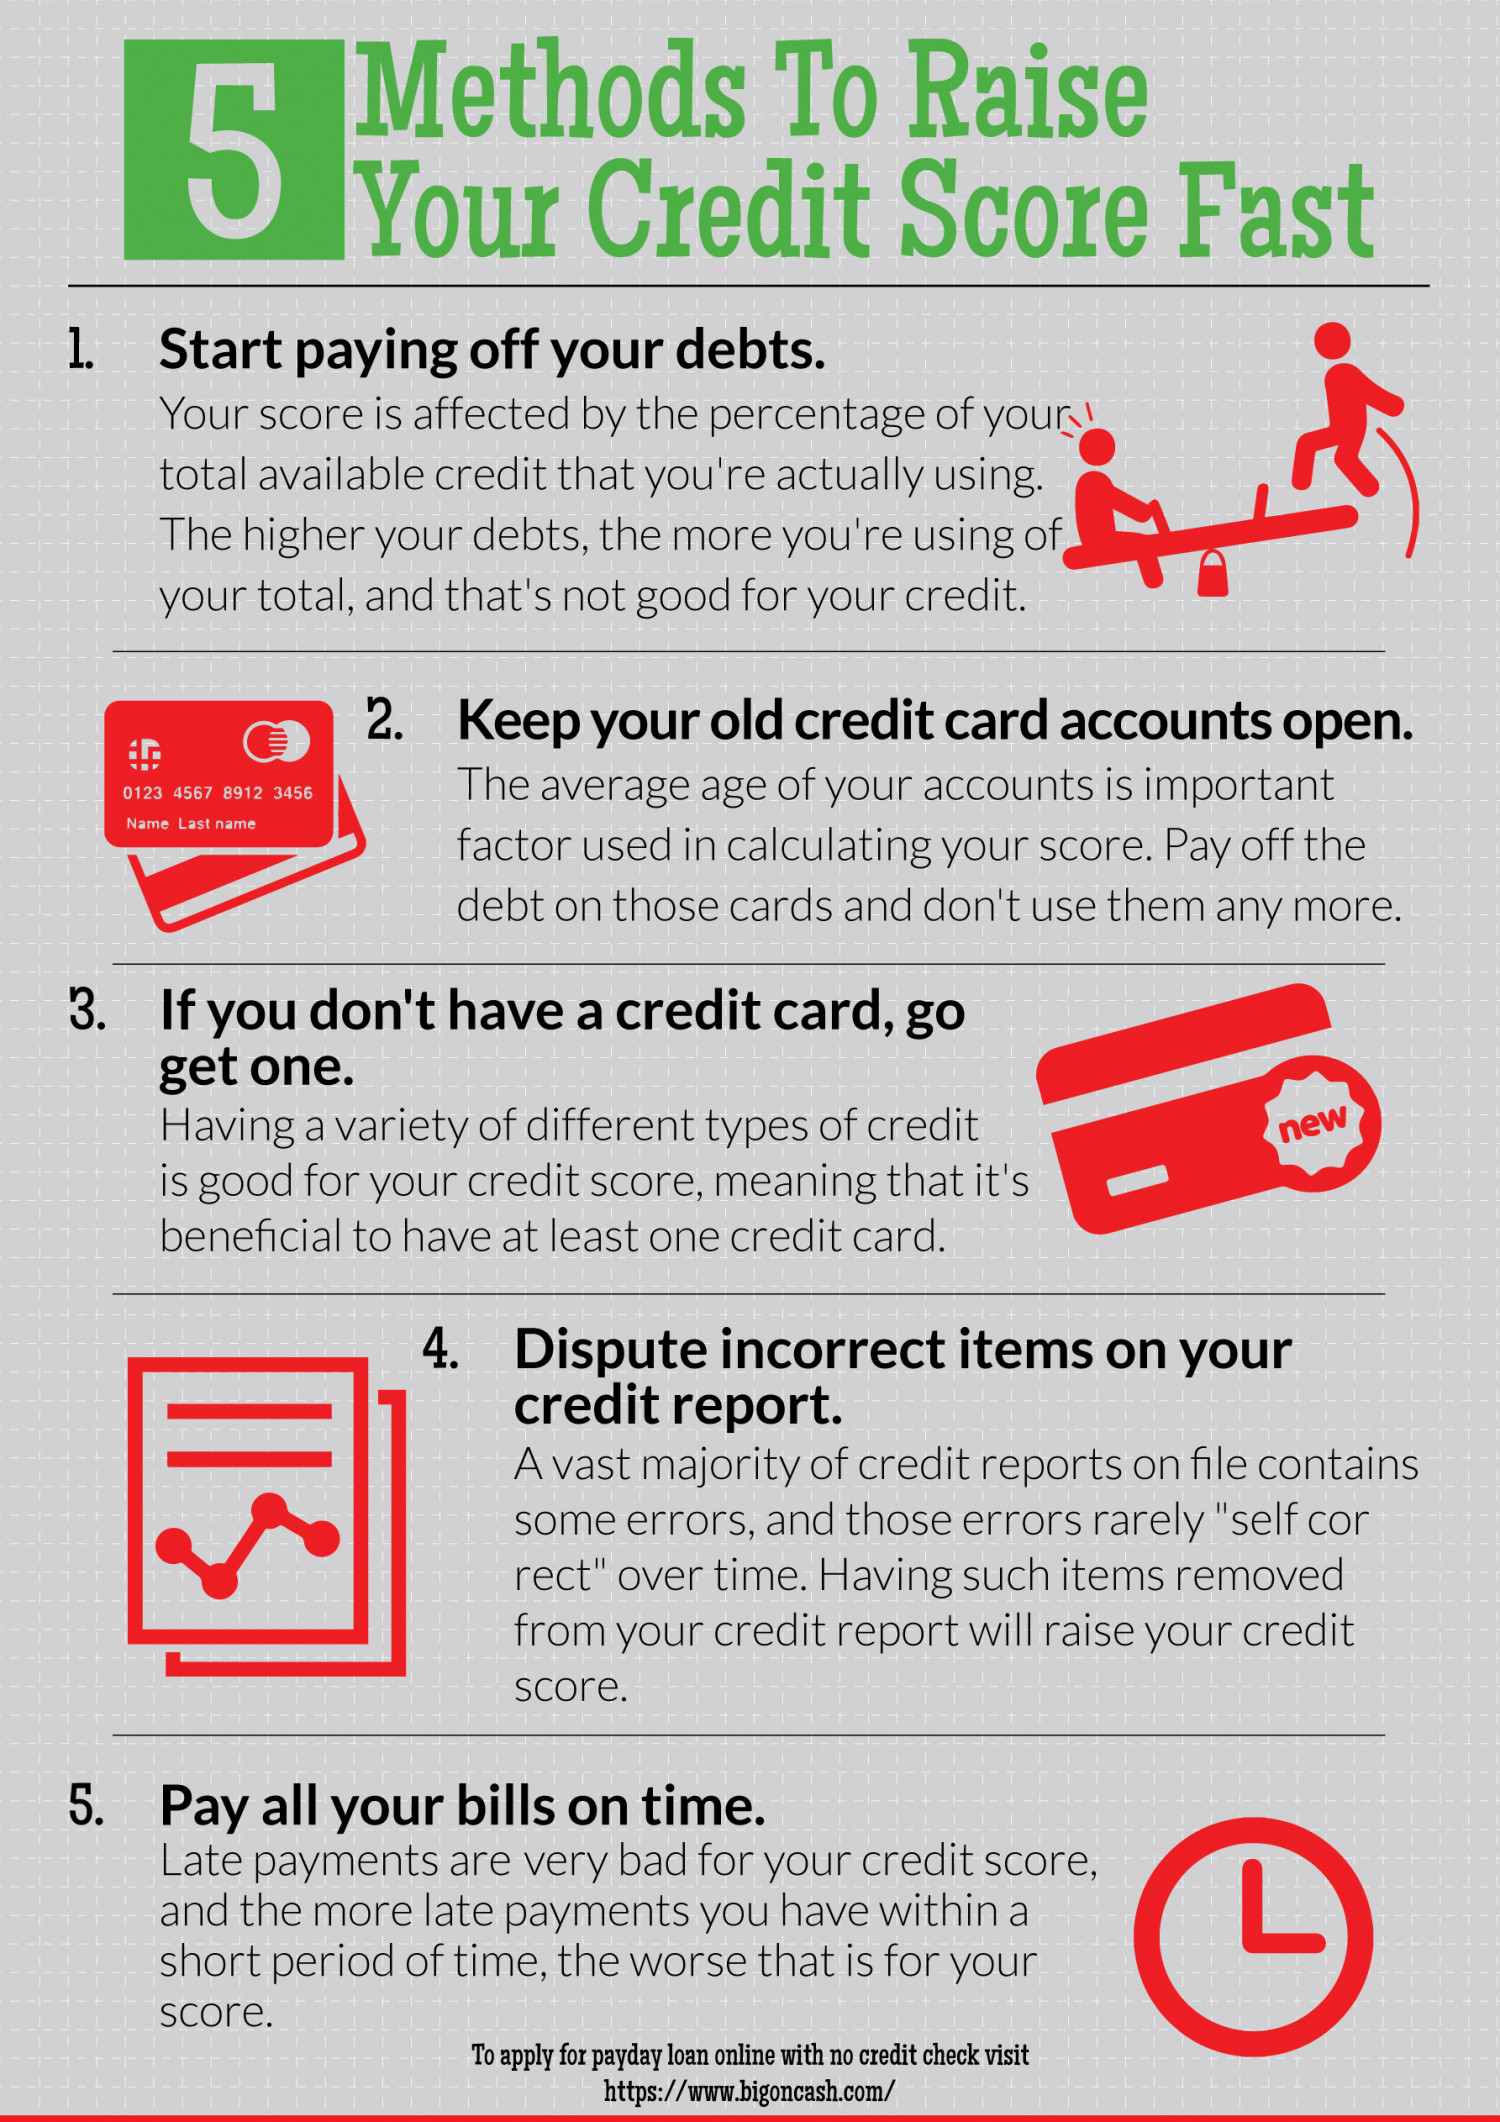 Forum on this topic: How to Improve Your Credit Score, how-to-improve-your-credit-score/